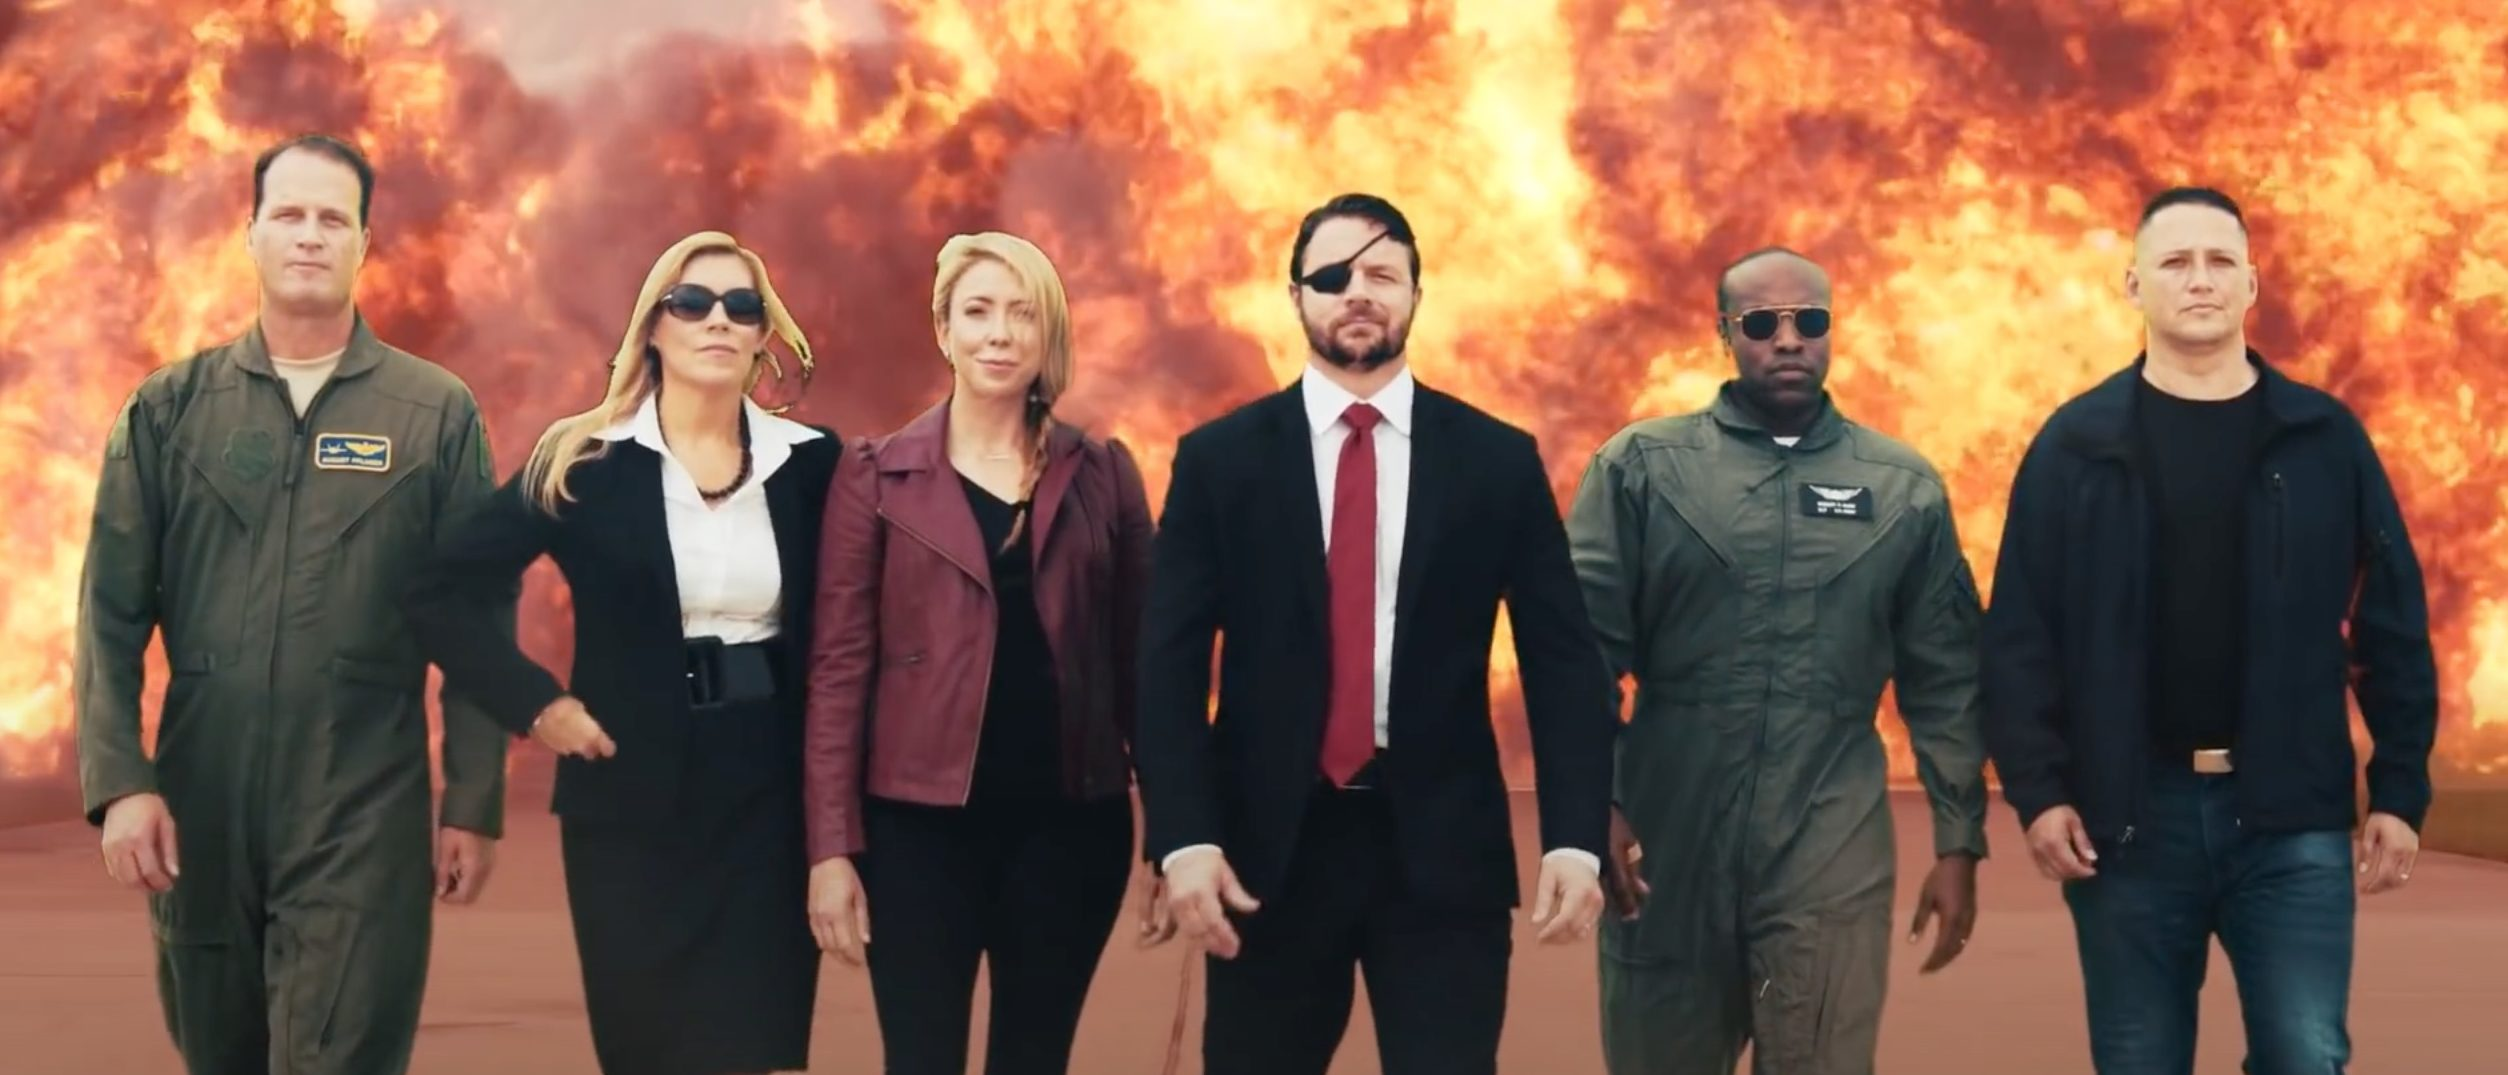 'Who Says Campaign Ads Have To Suck?' Dan Crenshaw Releases Joint Ad That Riffs 'The Avengers,' 'Mission: Impossible'